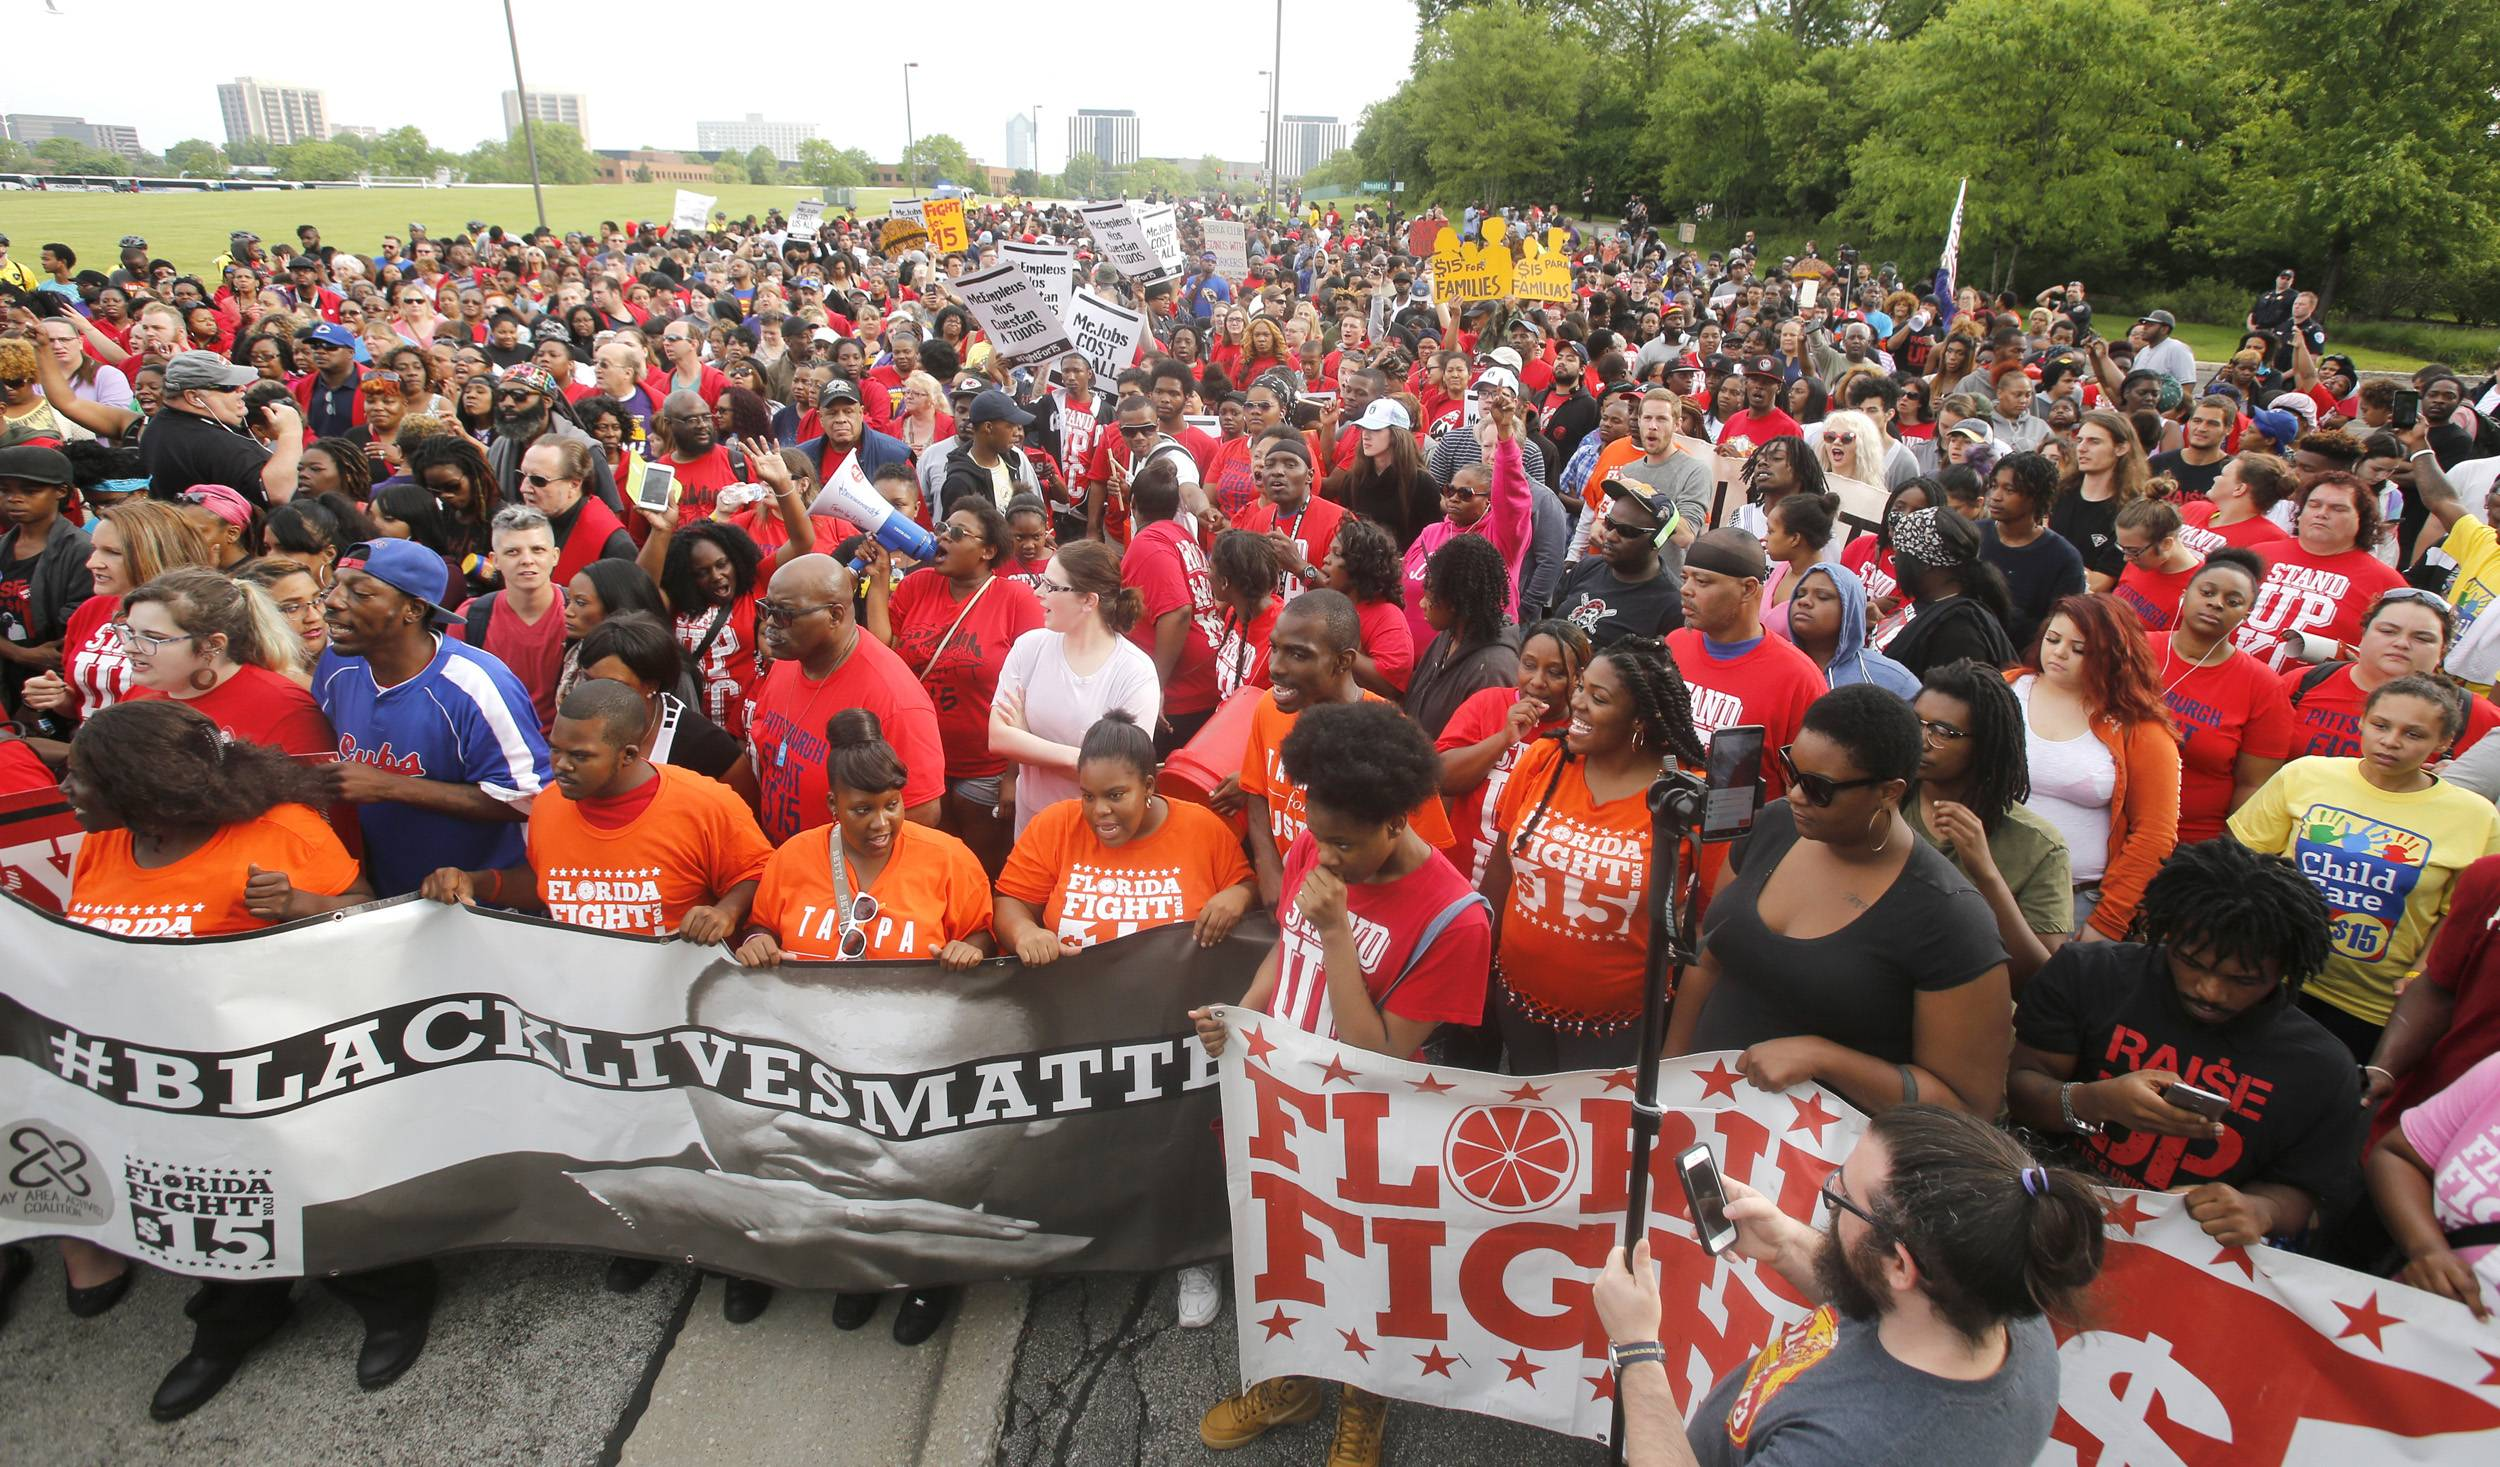 Hundreds of McDonald's workers march outside the fast food chain's Oak Brook campus Thursday morning, kicking off their second day of protests over wages.